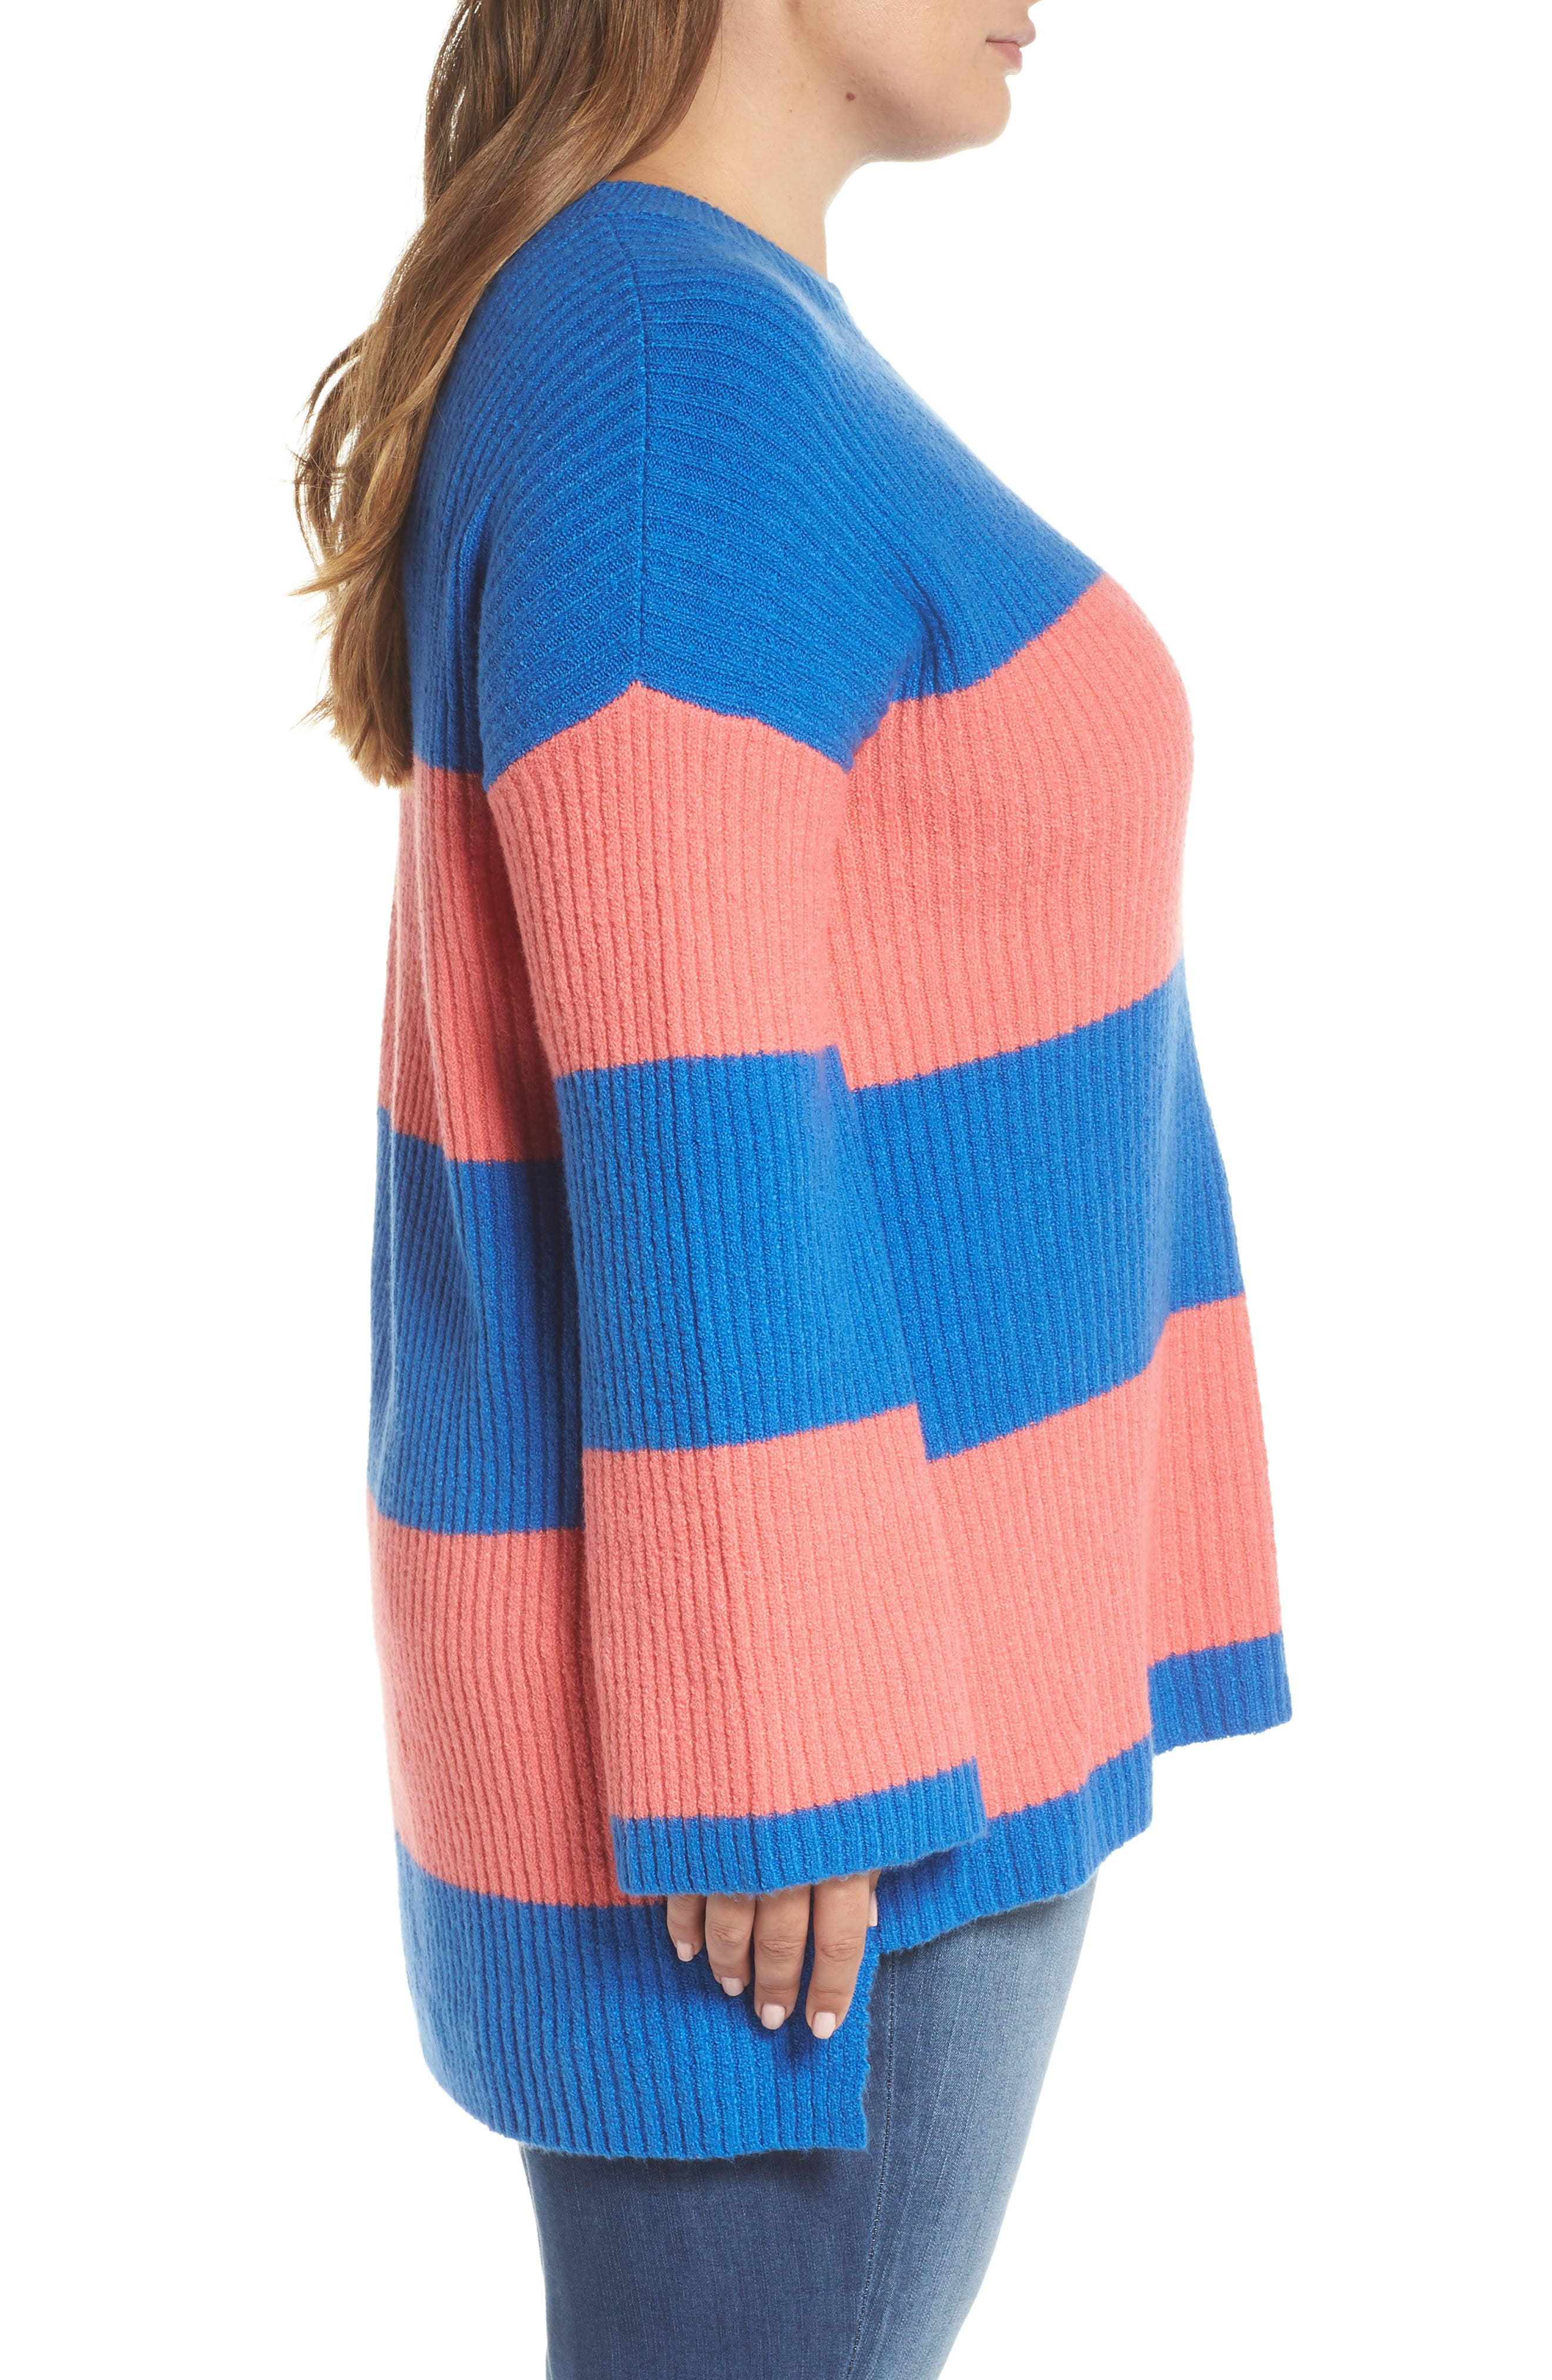 Rugby Stripe Sweater,                             Alternate thumbnail 10, color,                             BLUE BOAT COURTNEY STRIPE